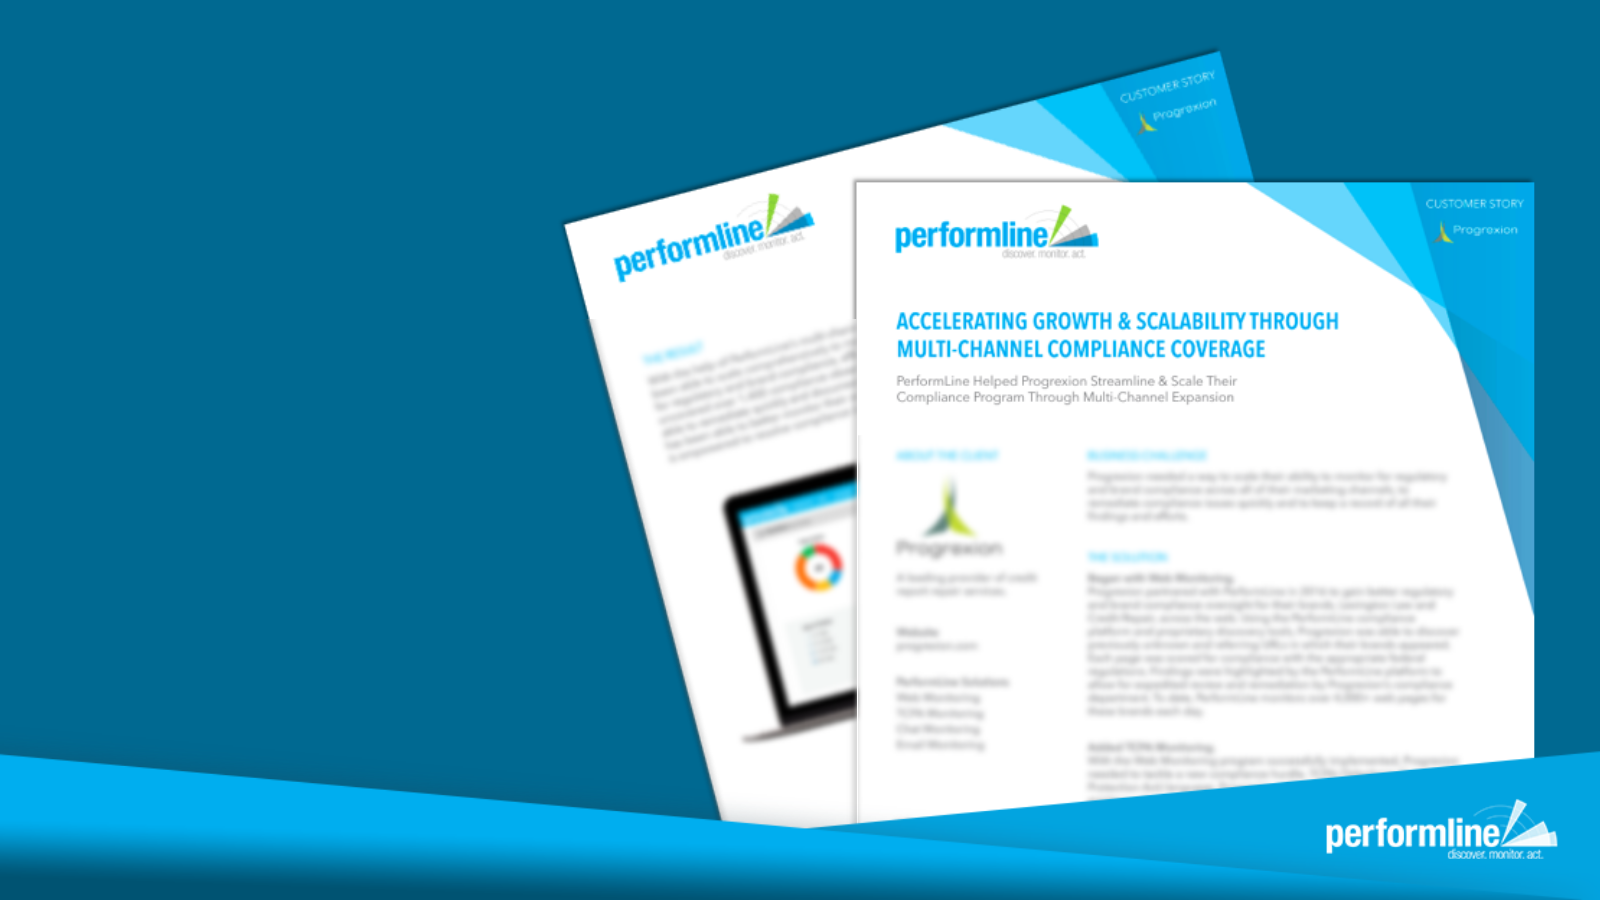 PerformLine Case Study for Accelerating Growth and Scalability Through Automated Multi-Channel Compliance Coverage